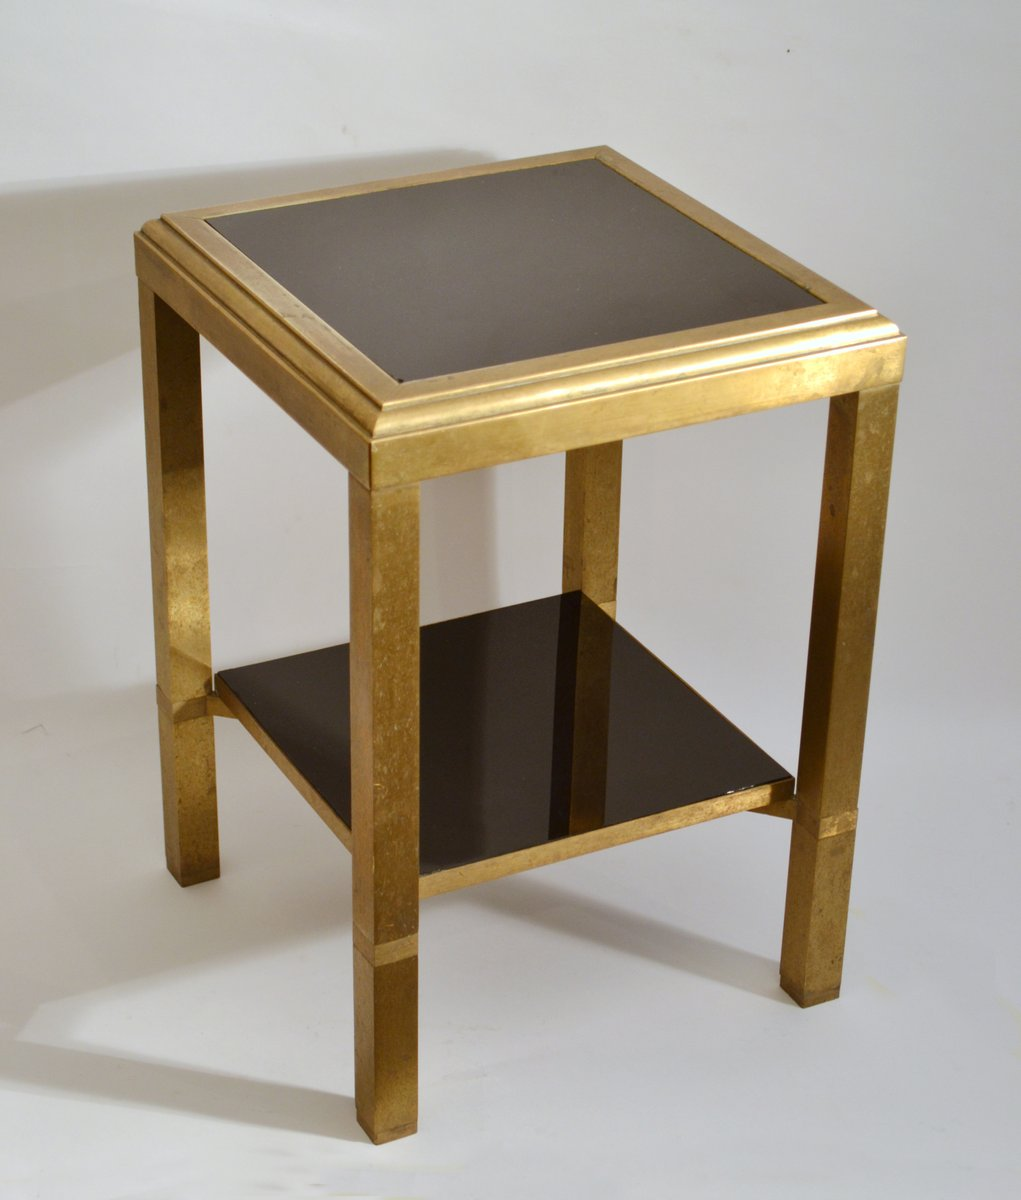 Brass Square Side Tables With Level Black Glass Shelves Set Of - Black and brass side table